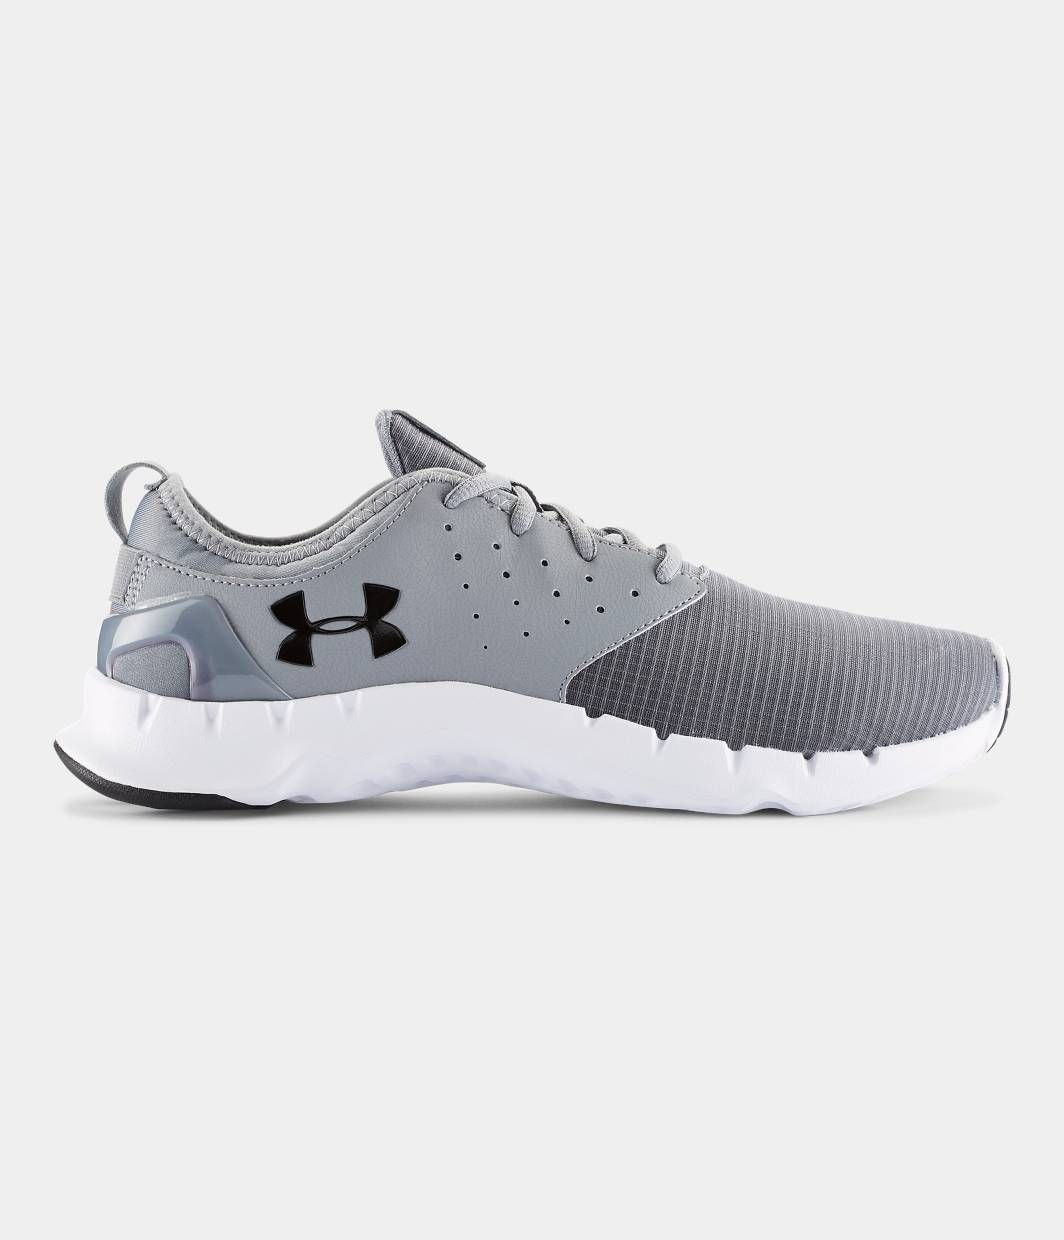 adc8beacee10 shop mens ua flow grid running shoes under armour us hommes under armour  rayon de 37649